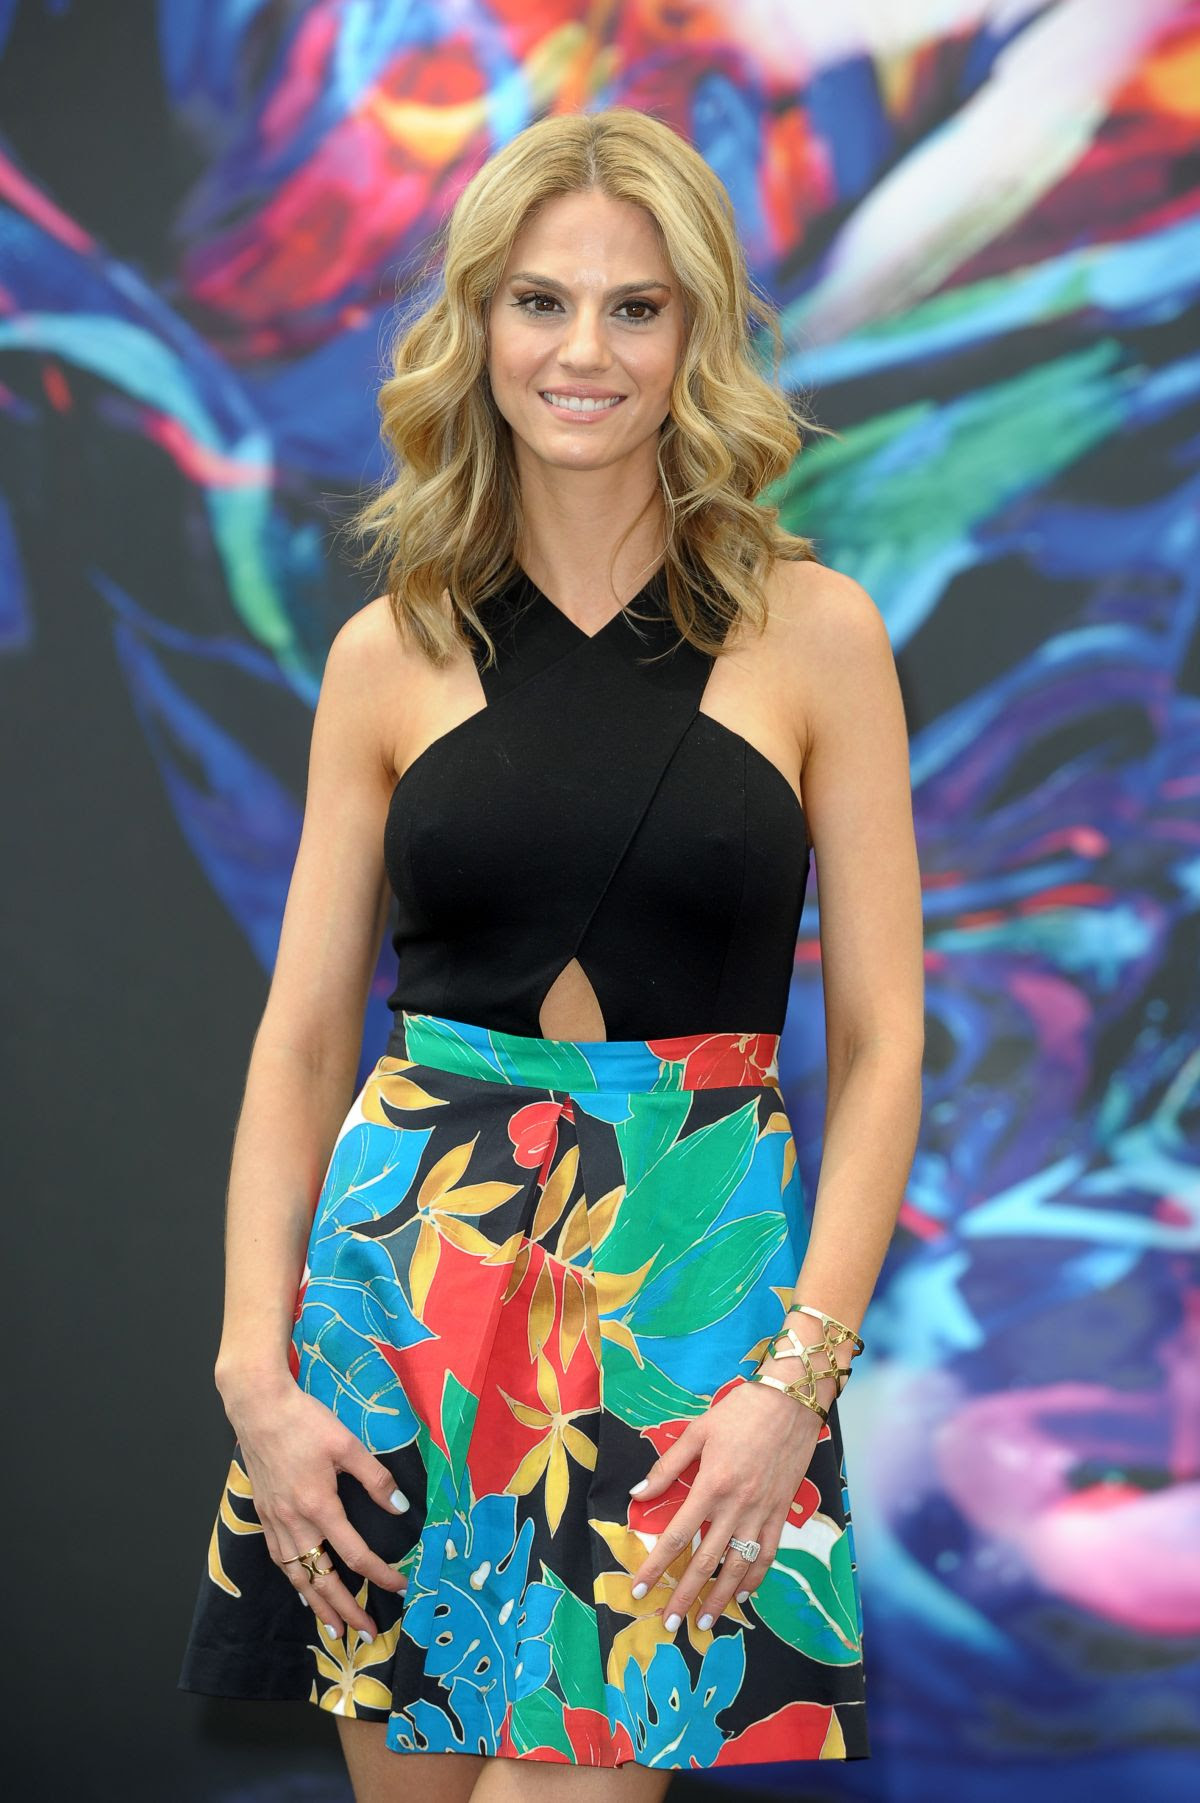 KELLY KRUGER at The Bold & The Beautiful Photocall at 56th Television Festival in Monte Carlo 06/13/2016